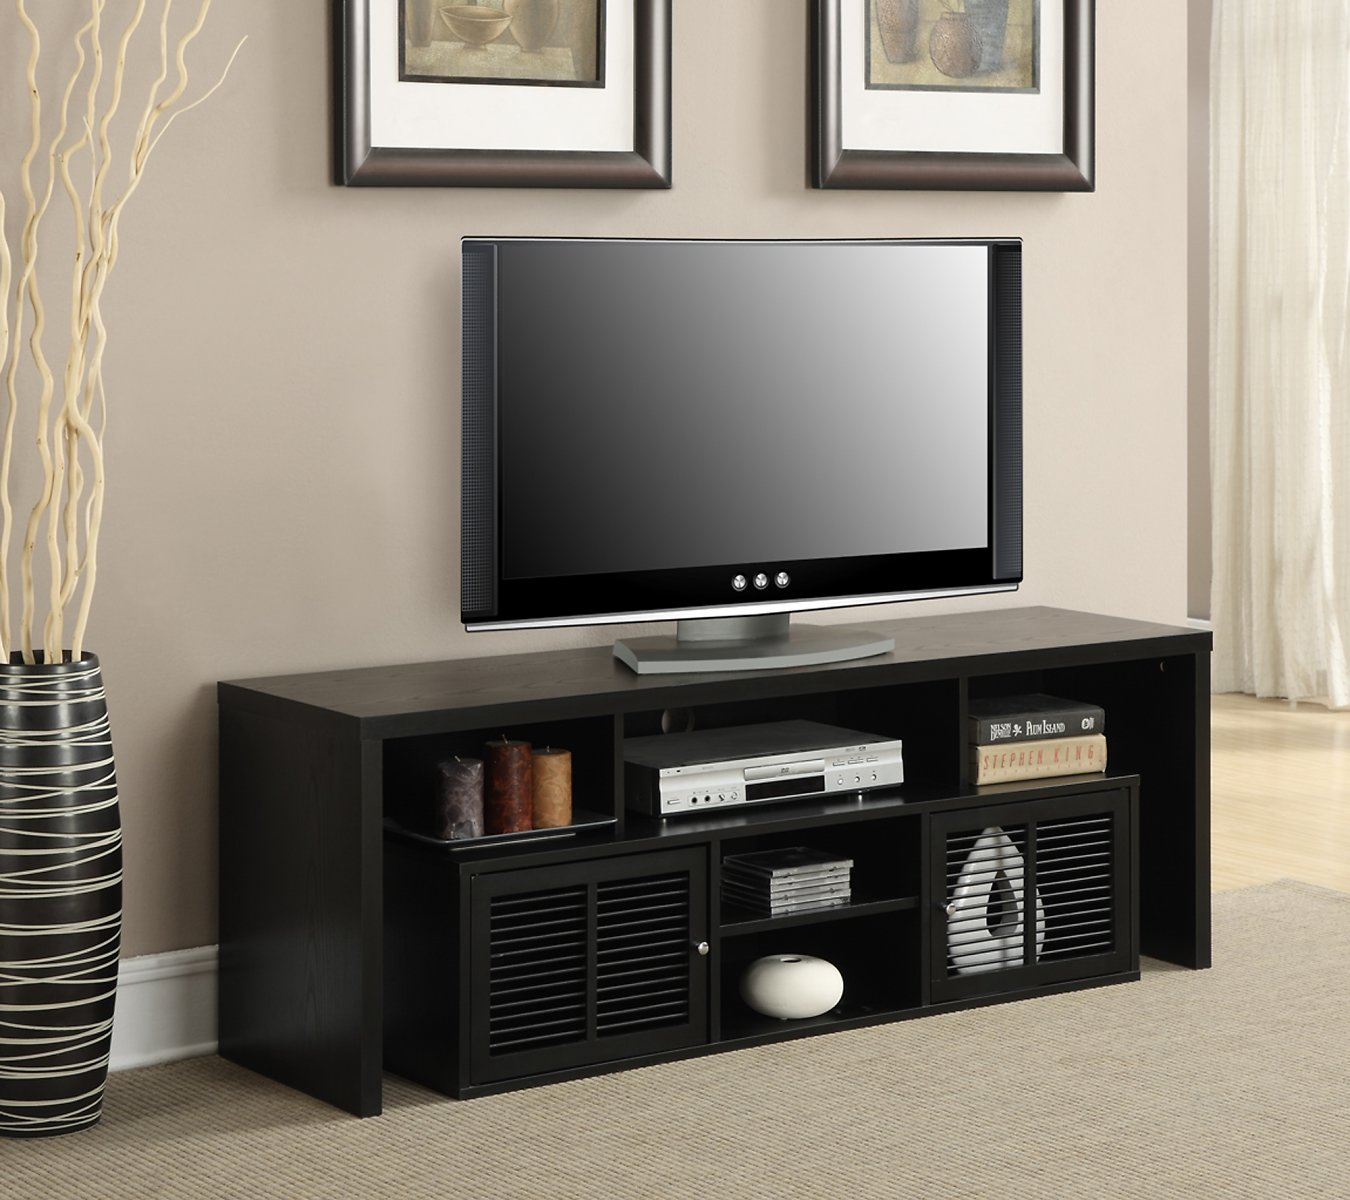 Convenience Concepts Lexington TV Stand for TVs Up to 60